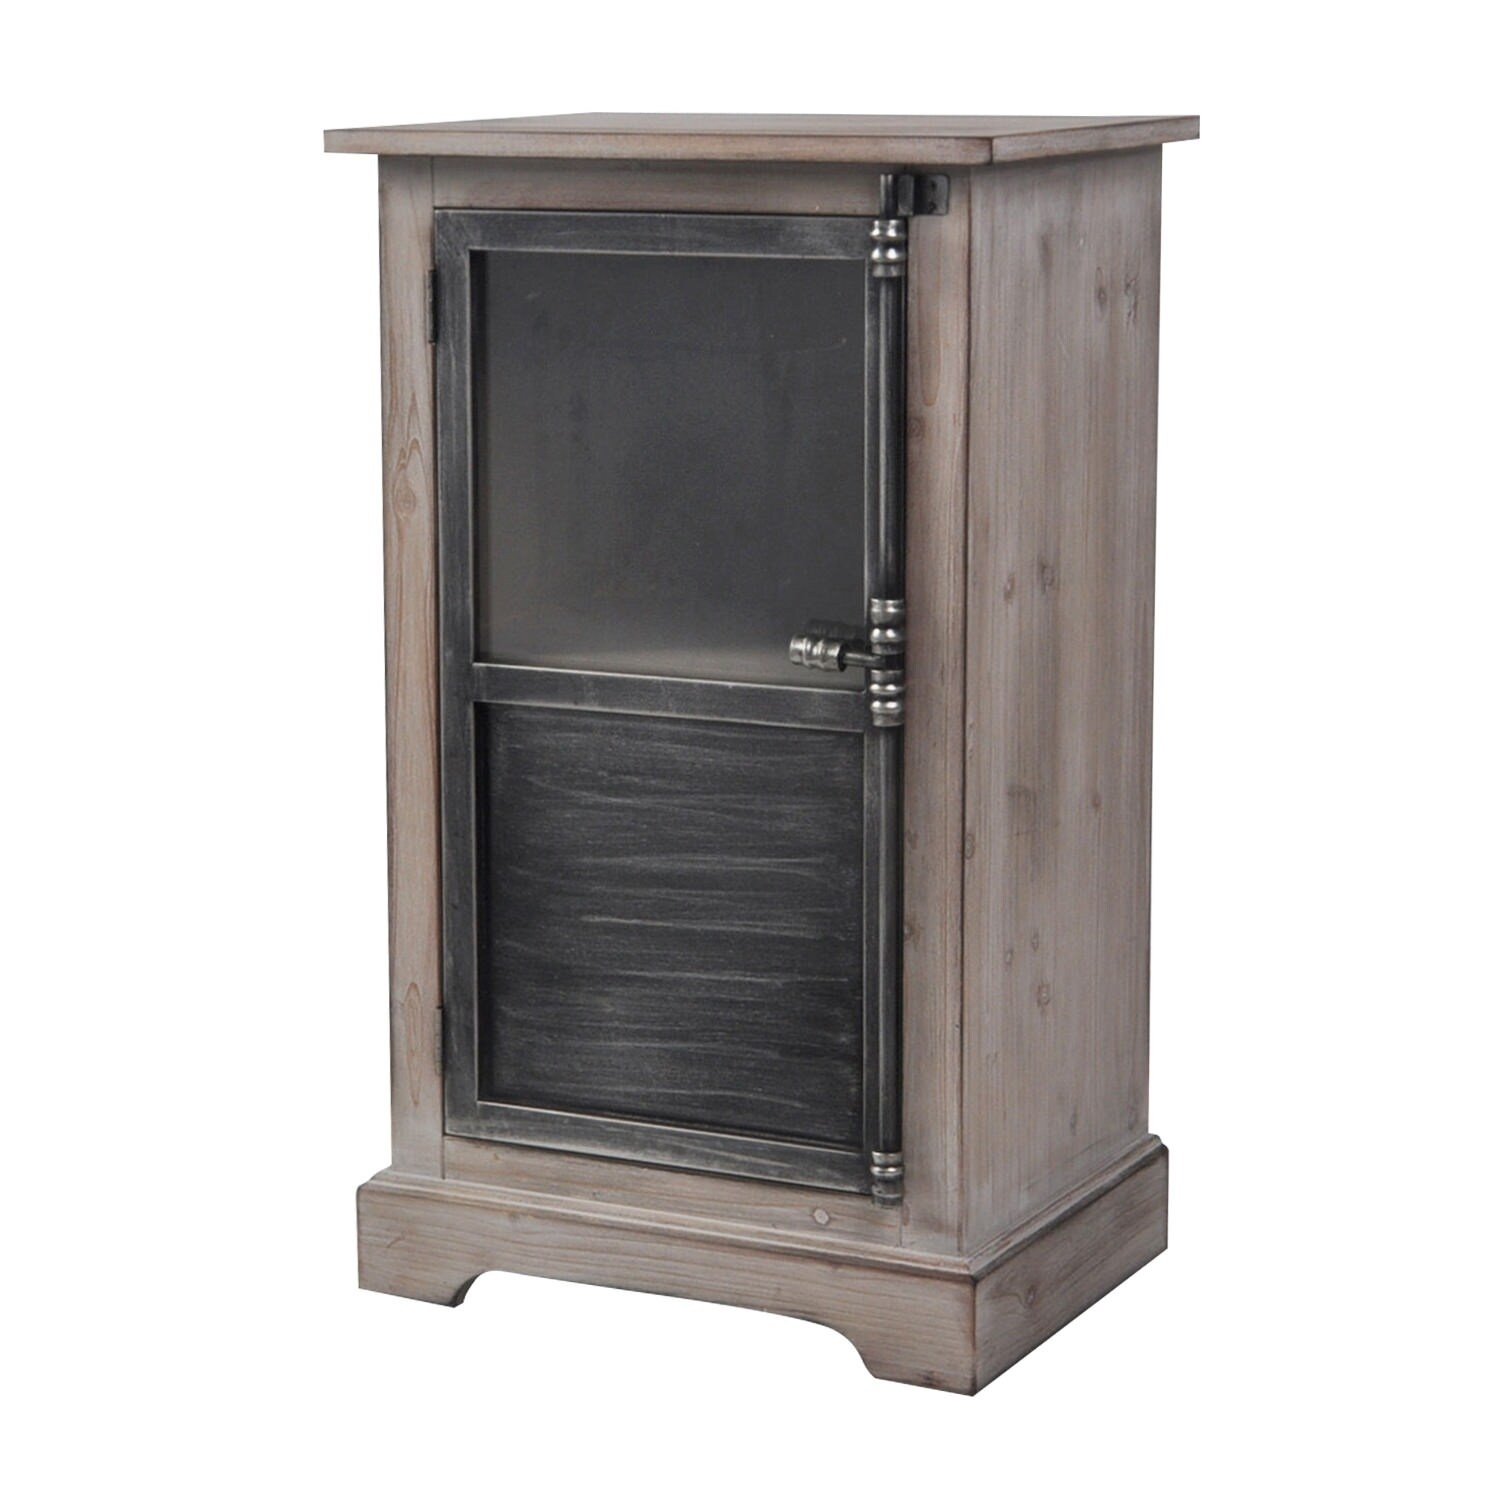 q industrial original metal distressed cabinet bathroom glass furniture display